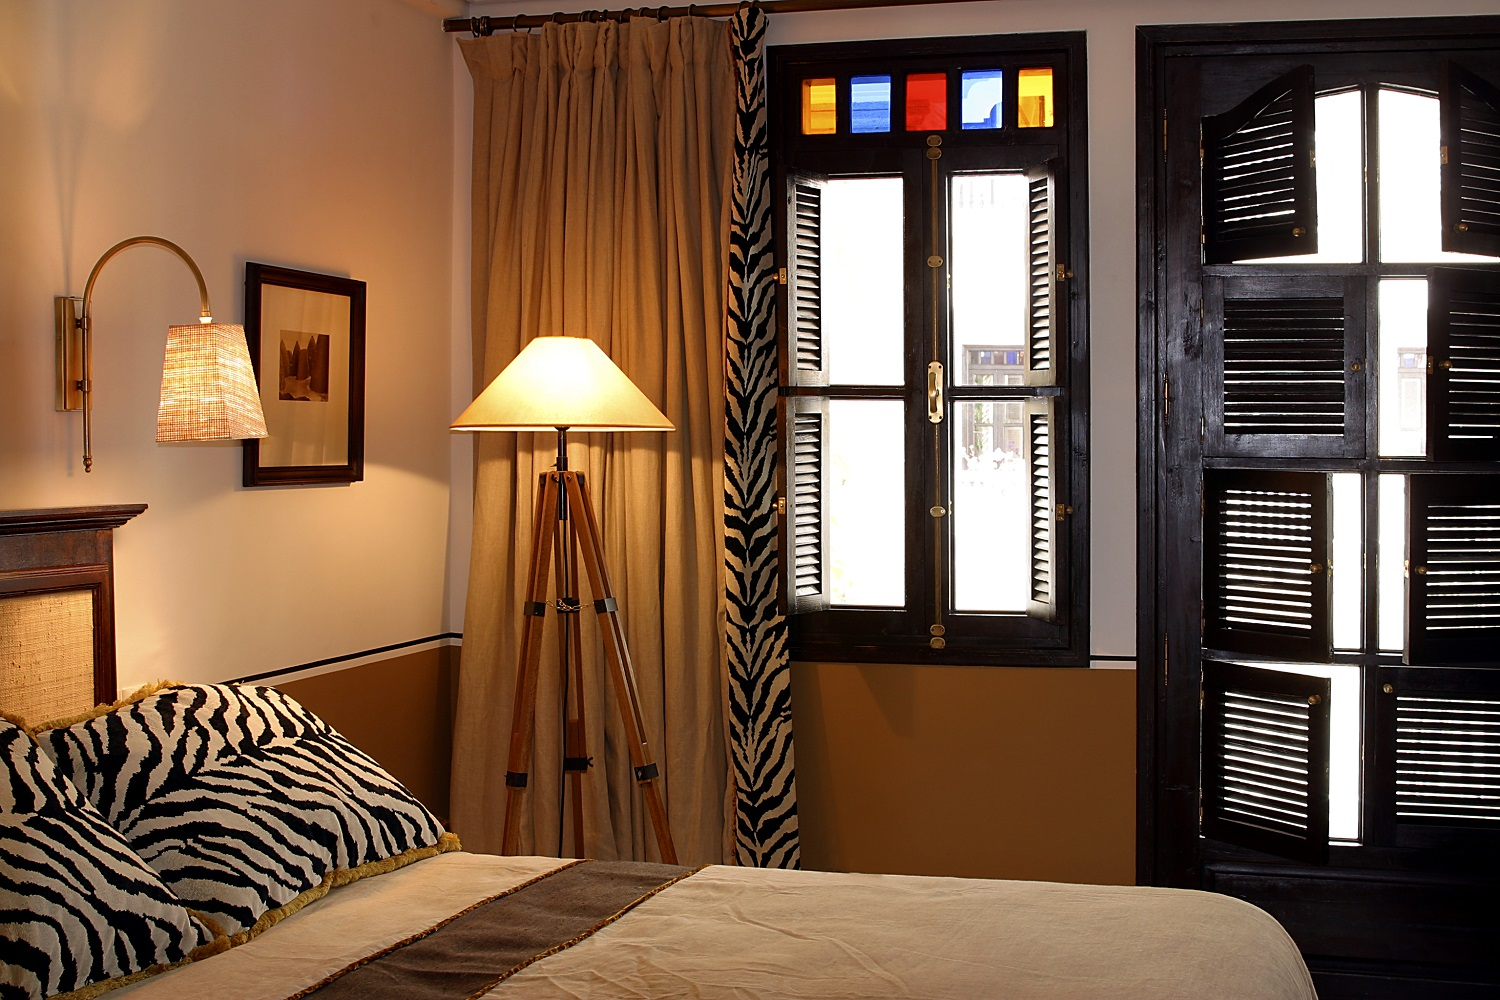 ma d co africaine fa on kirikou debbosenegal. Black Bedroom Furniture Sets. Home Design Ideas